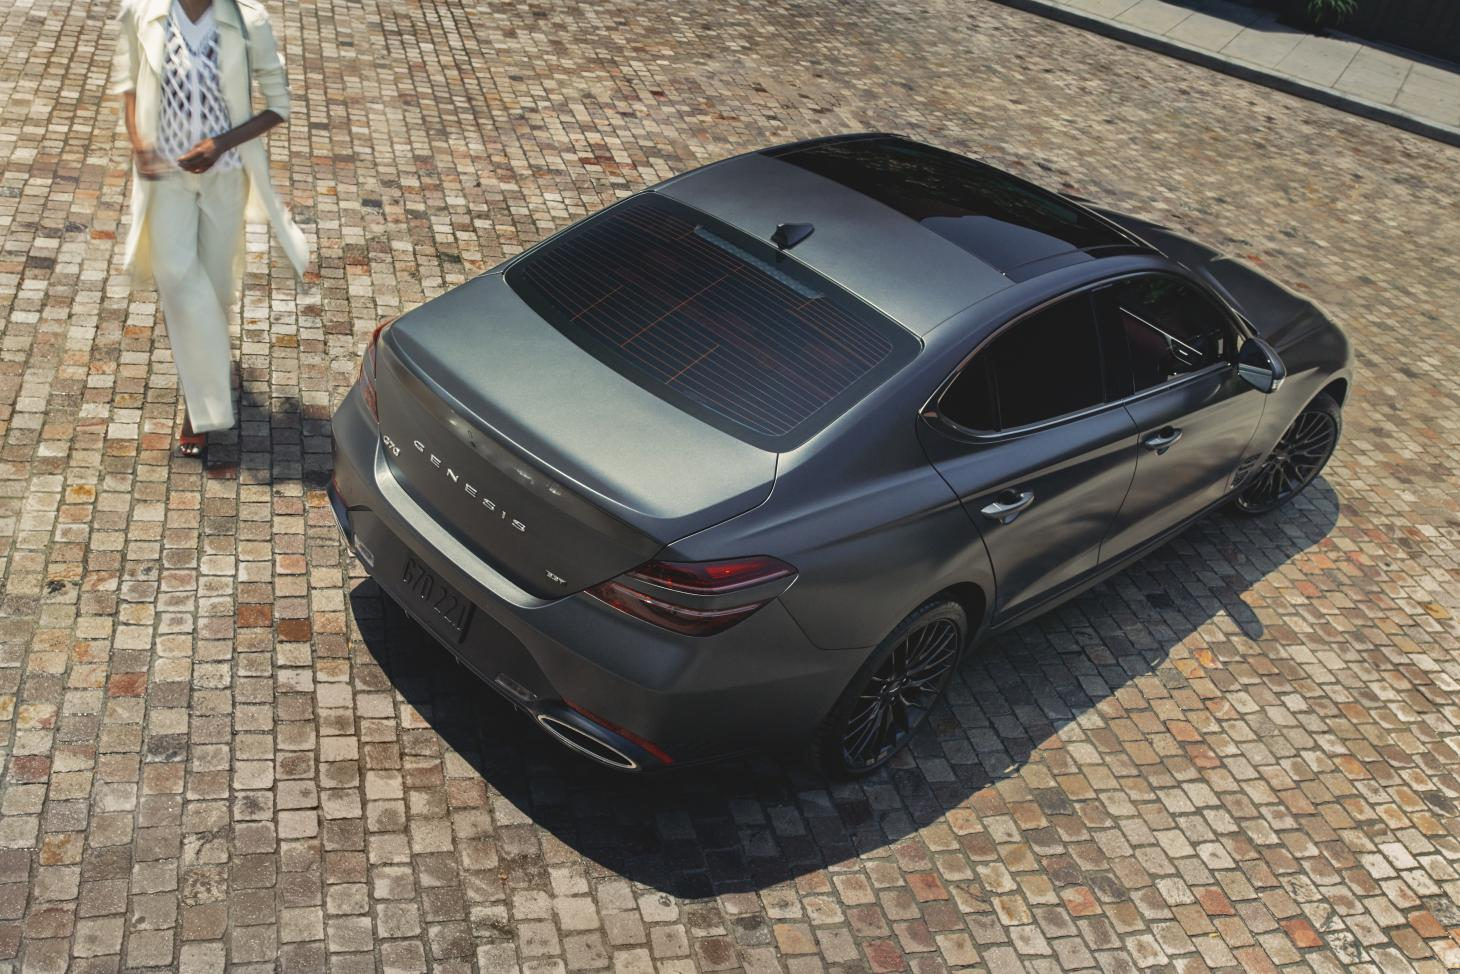 Genesis G70 car, exterior shot in cobbled plaza with woman in white suit beside car